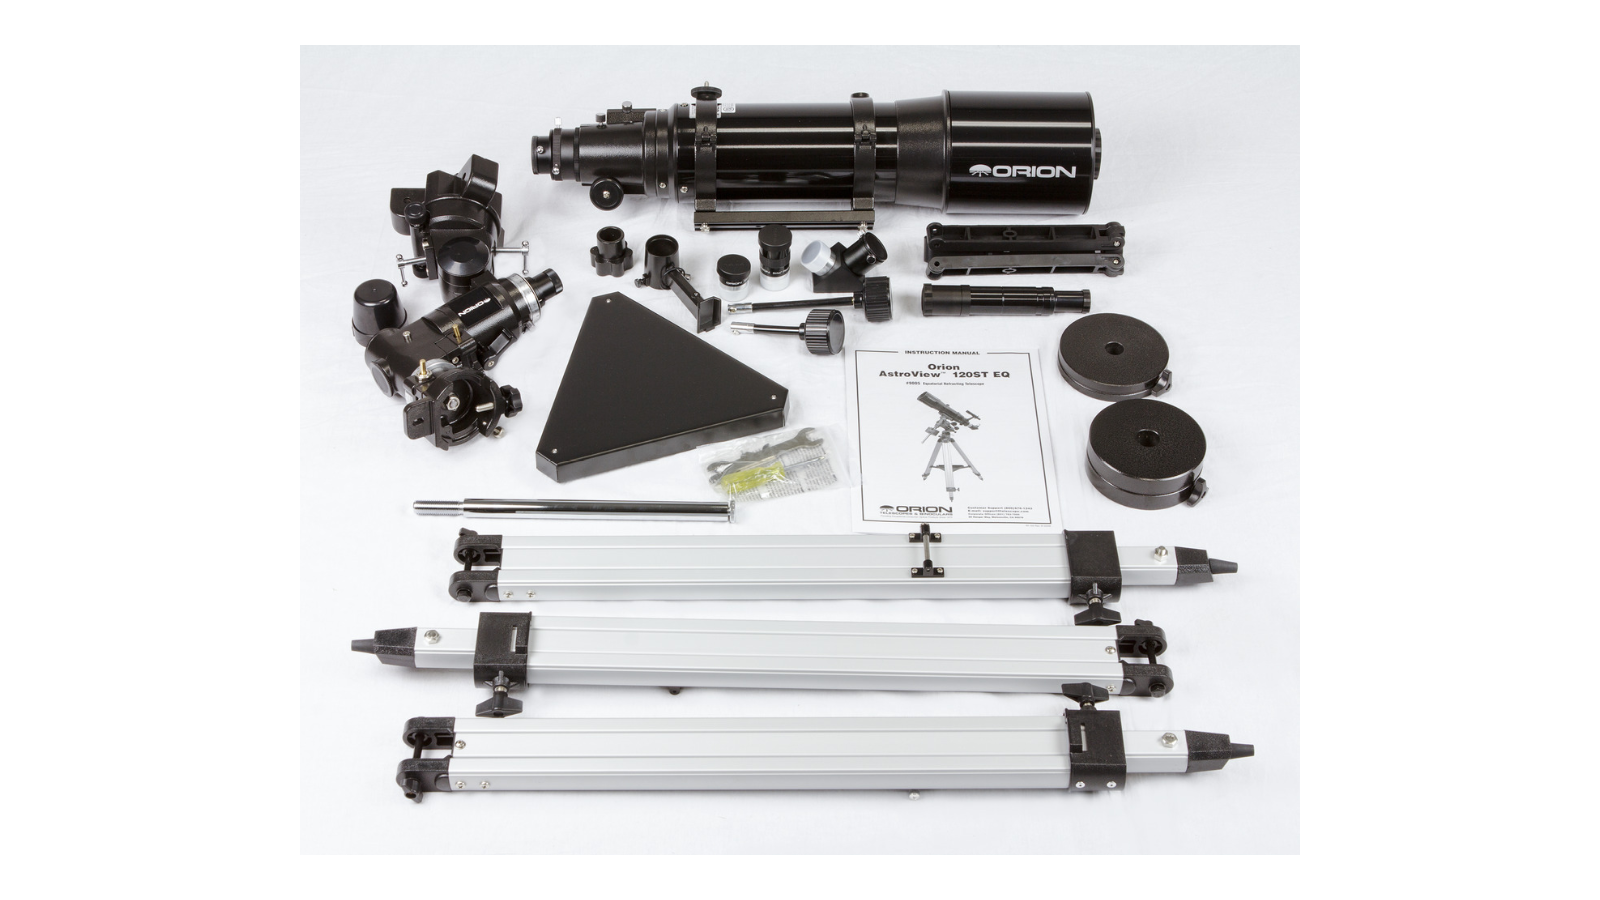 Accessories included with the AstroView 120ST